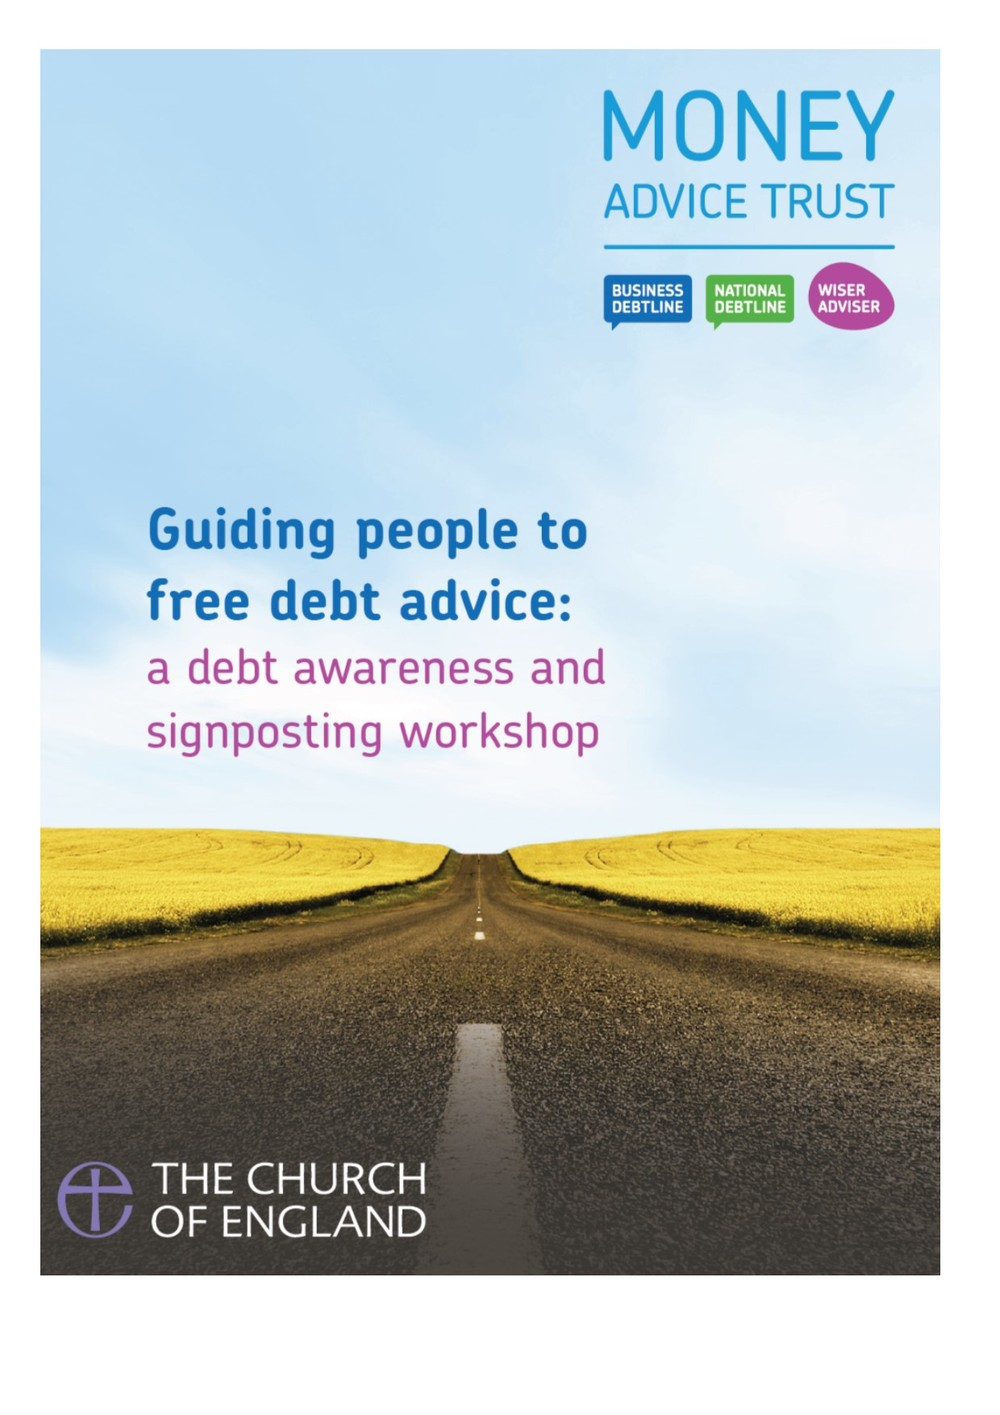 Debt Awareness and Signposting Workshop